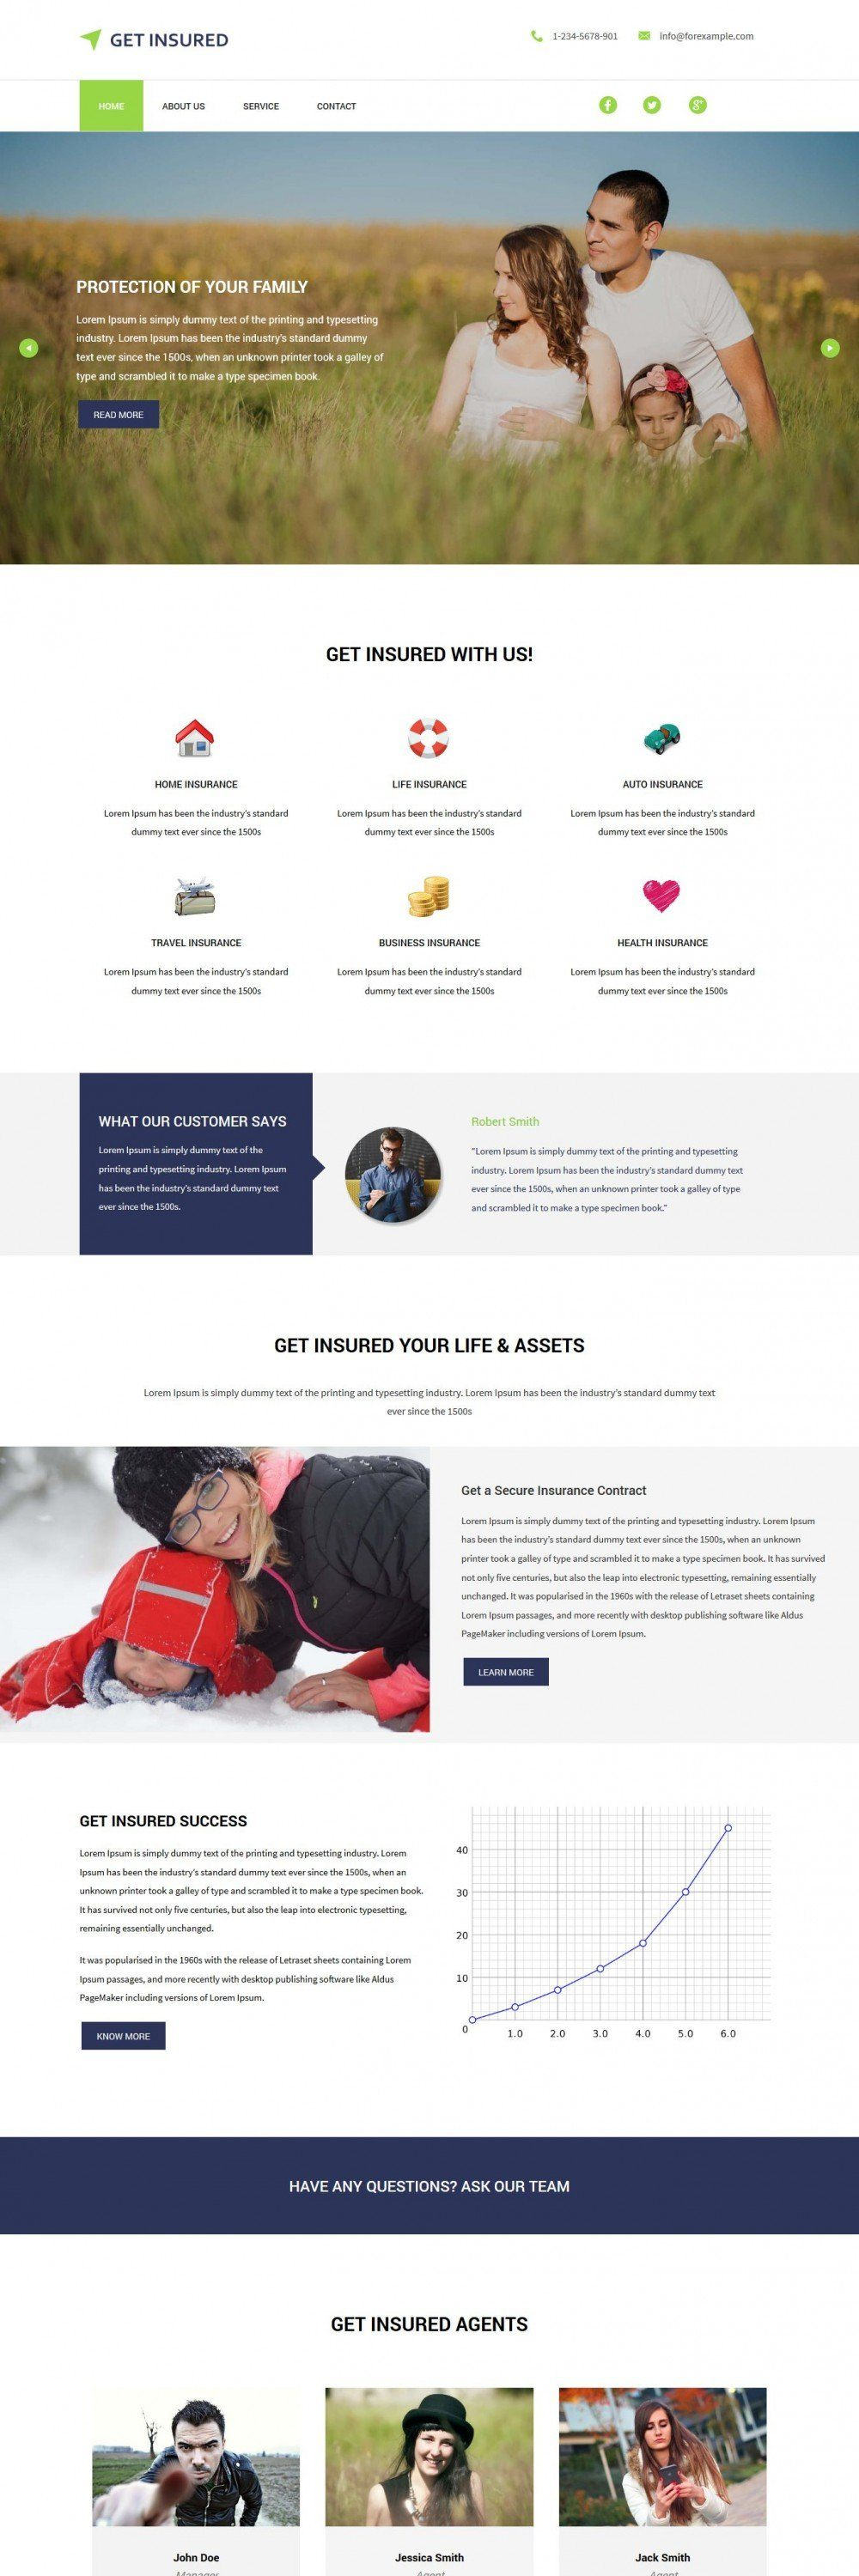 Get Insured Business and Insurance Company HTML Template